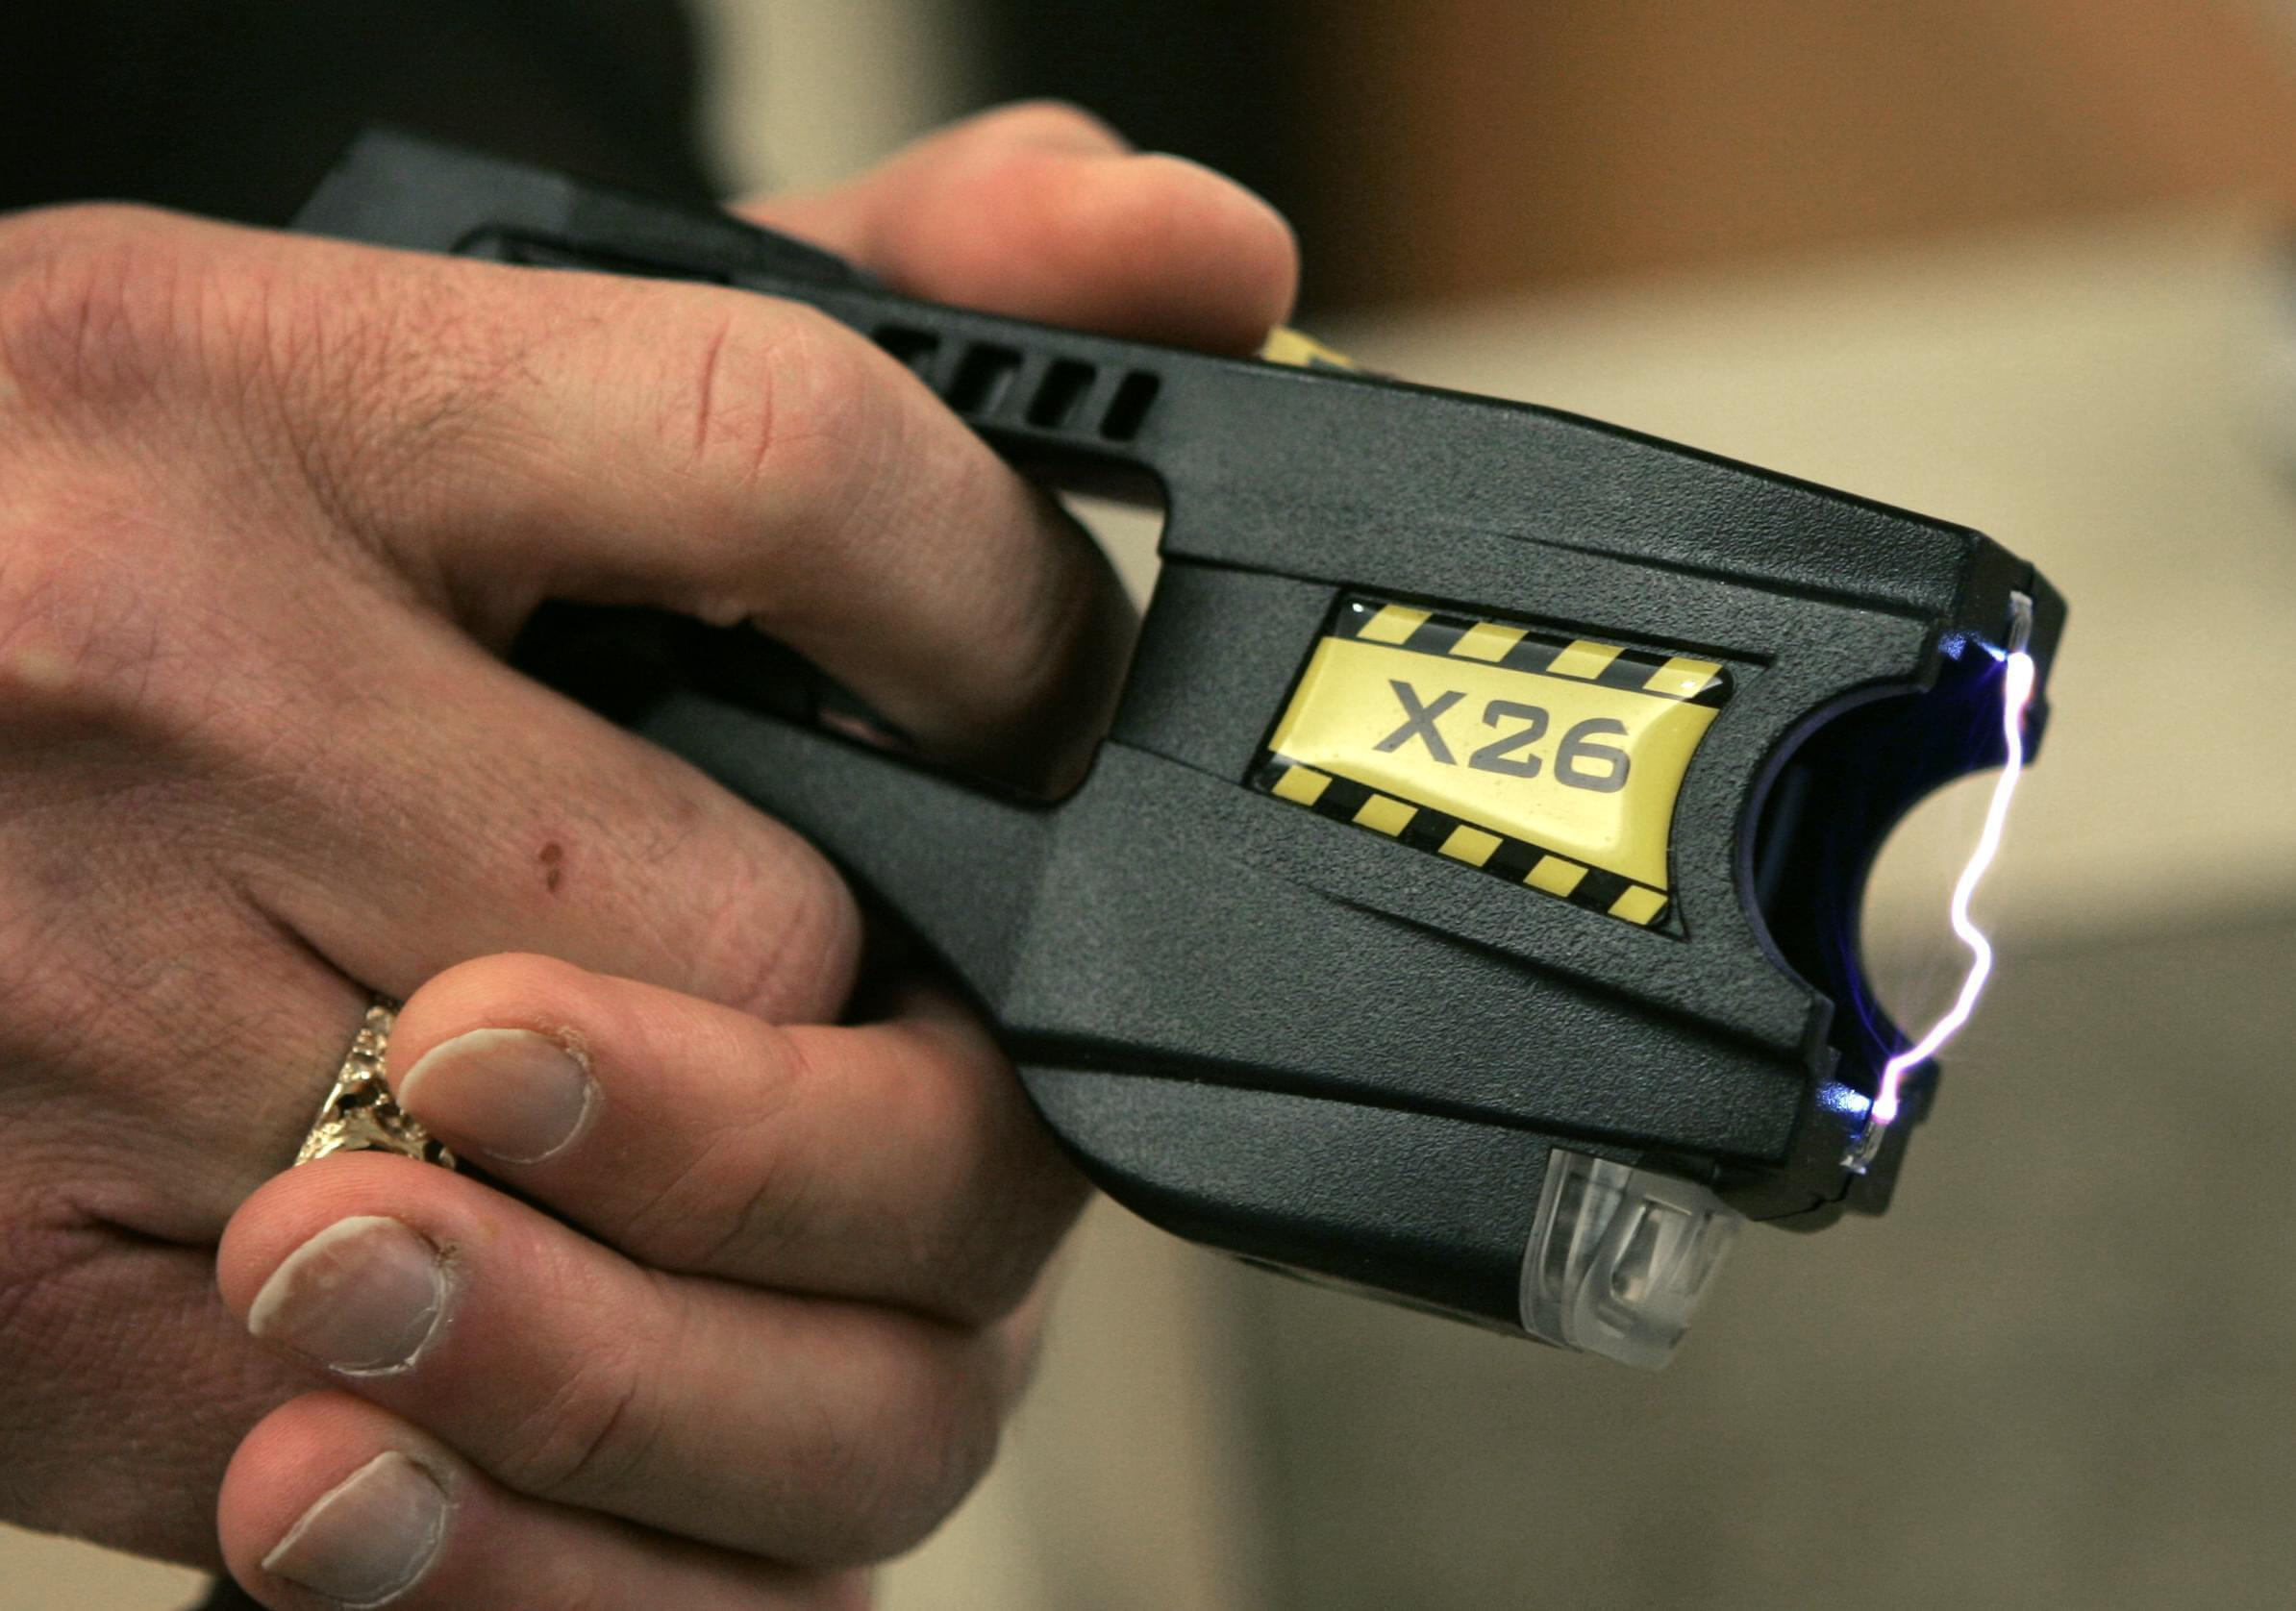 A Taser X26 is shown on display.